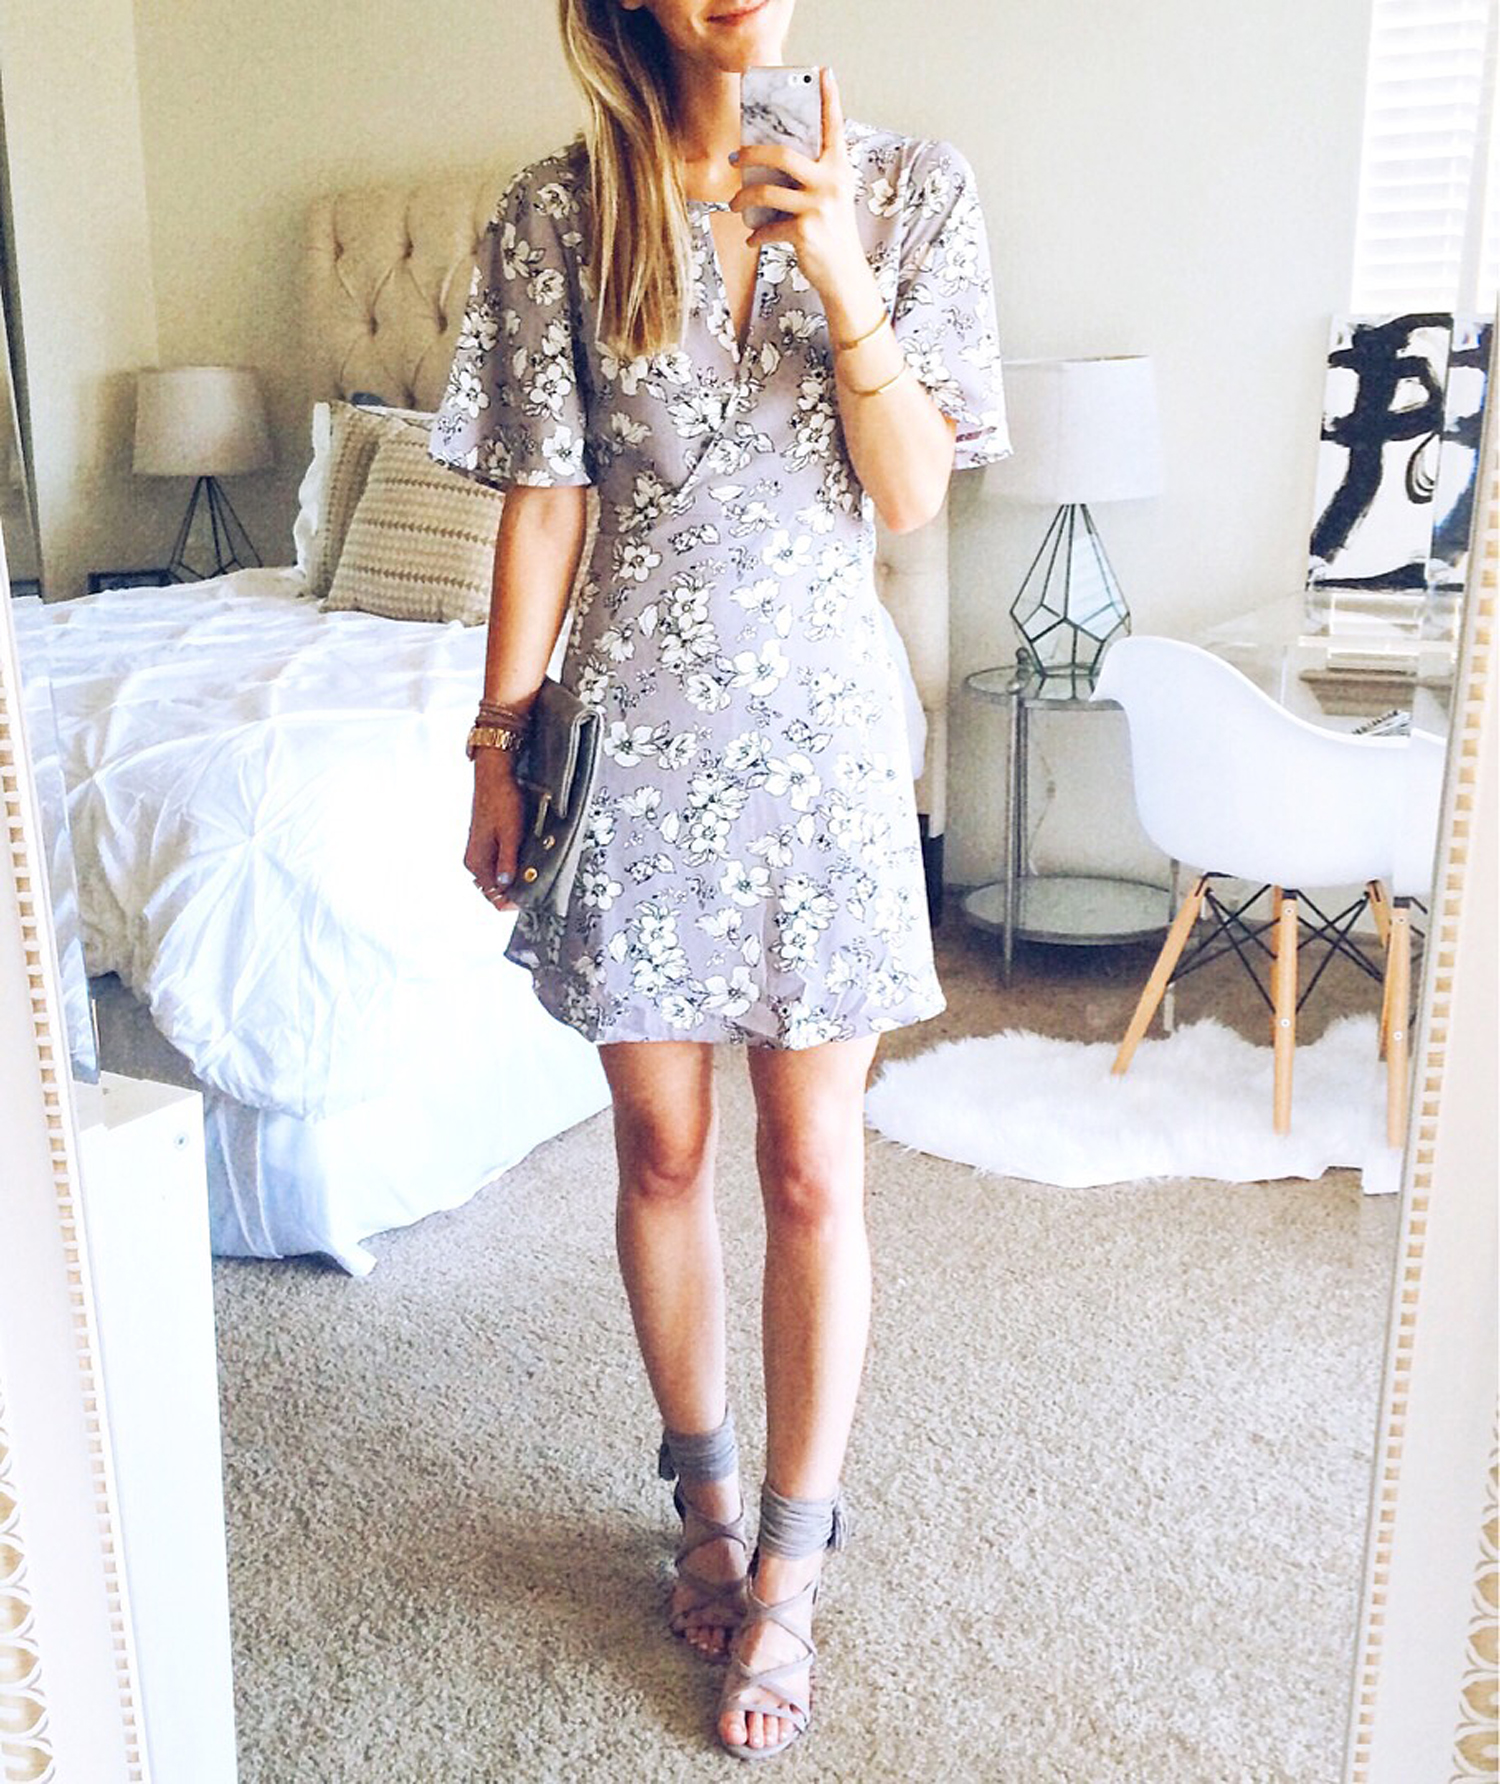 livvyland-blog-olivia-watson-austin-texas-fashion-blogger-wedding-attendee-outfit-what-to-wear-floral-lavender-purple-dress